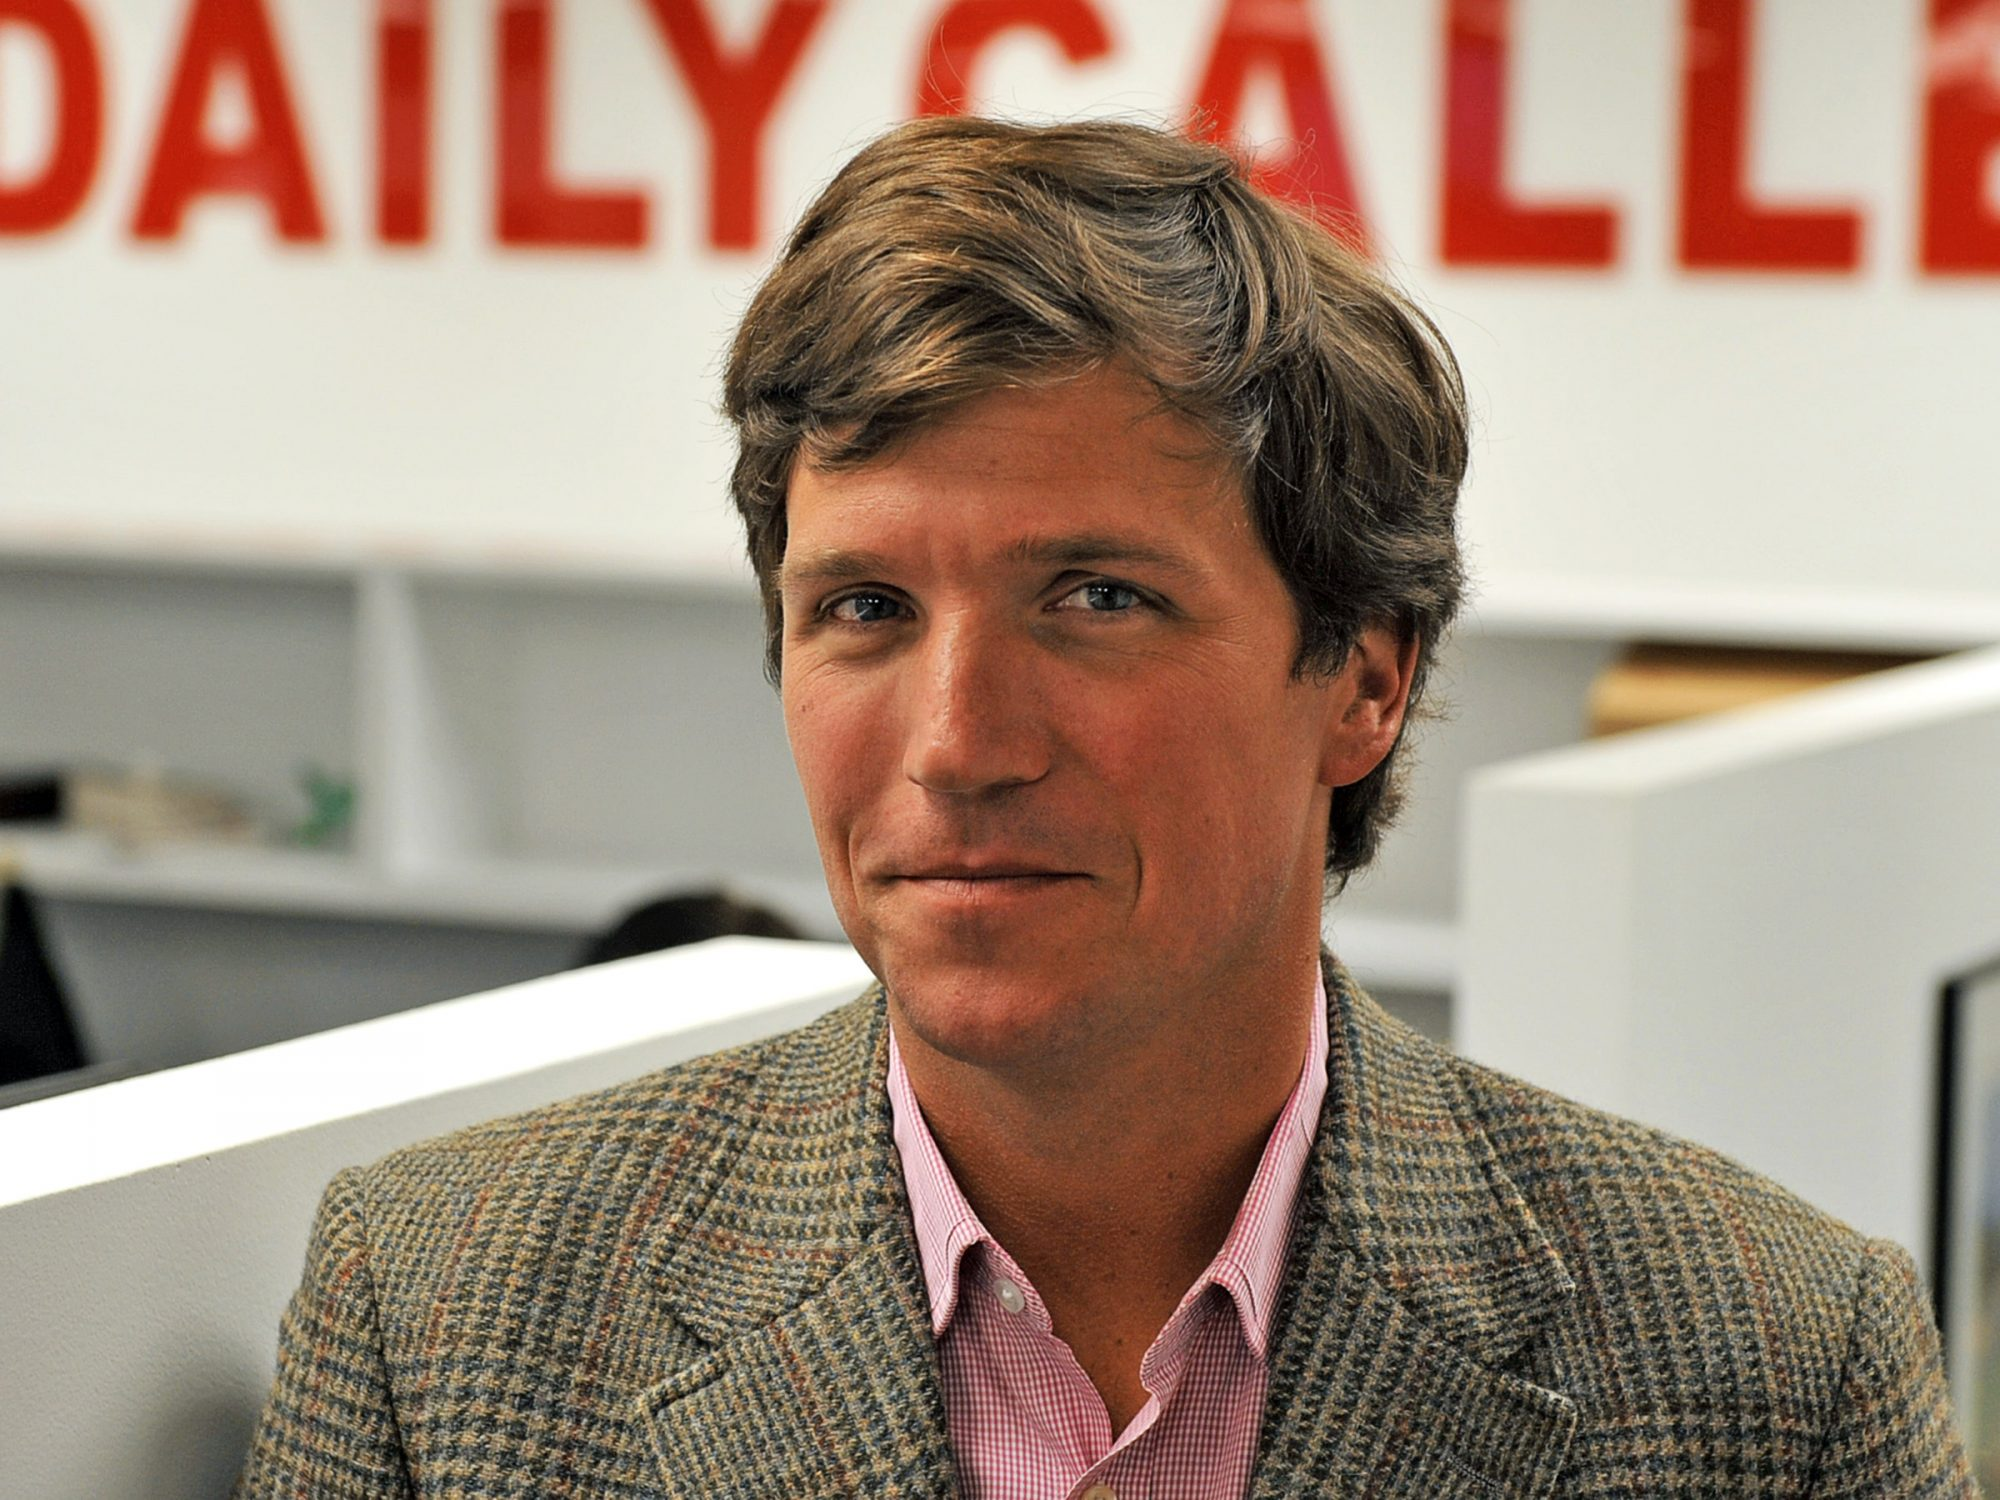 Tucker Carlson and the Launch of the Daily Caller, a New Conservative Website